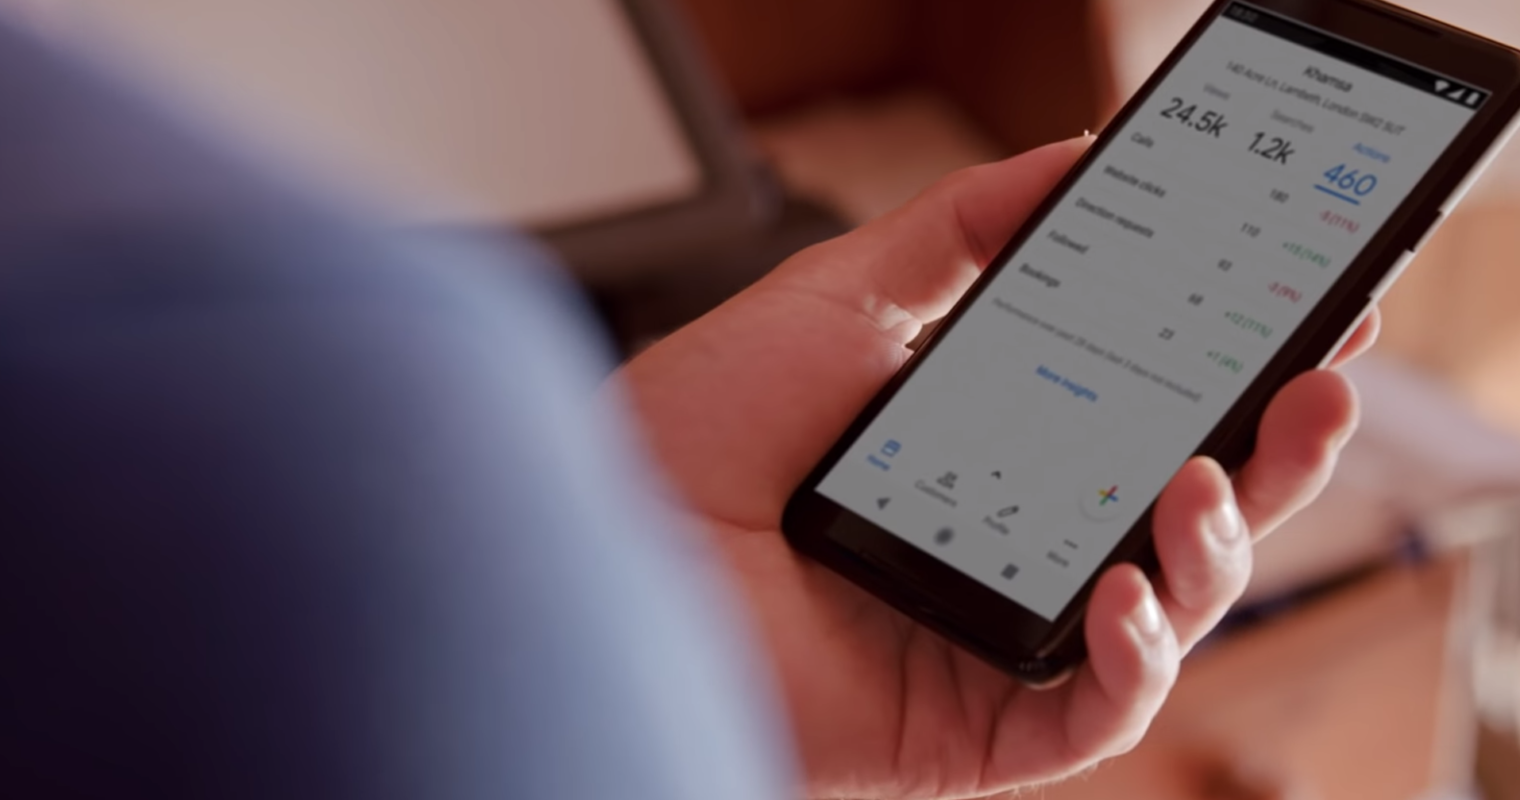 Google My Business App Updated With Ability to Create Posts, View Analytics, More